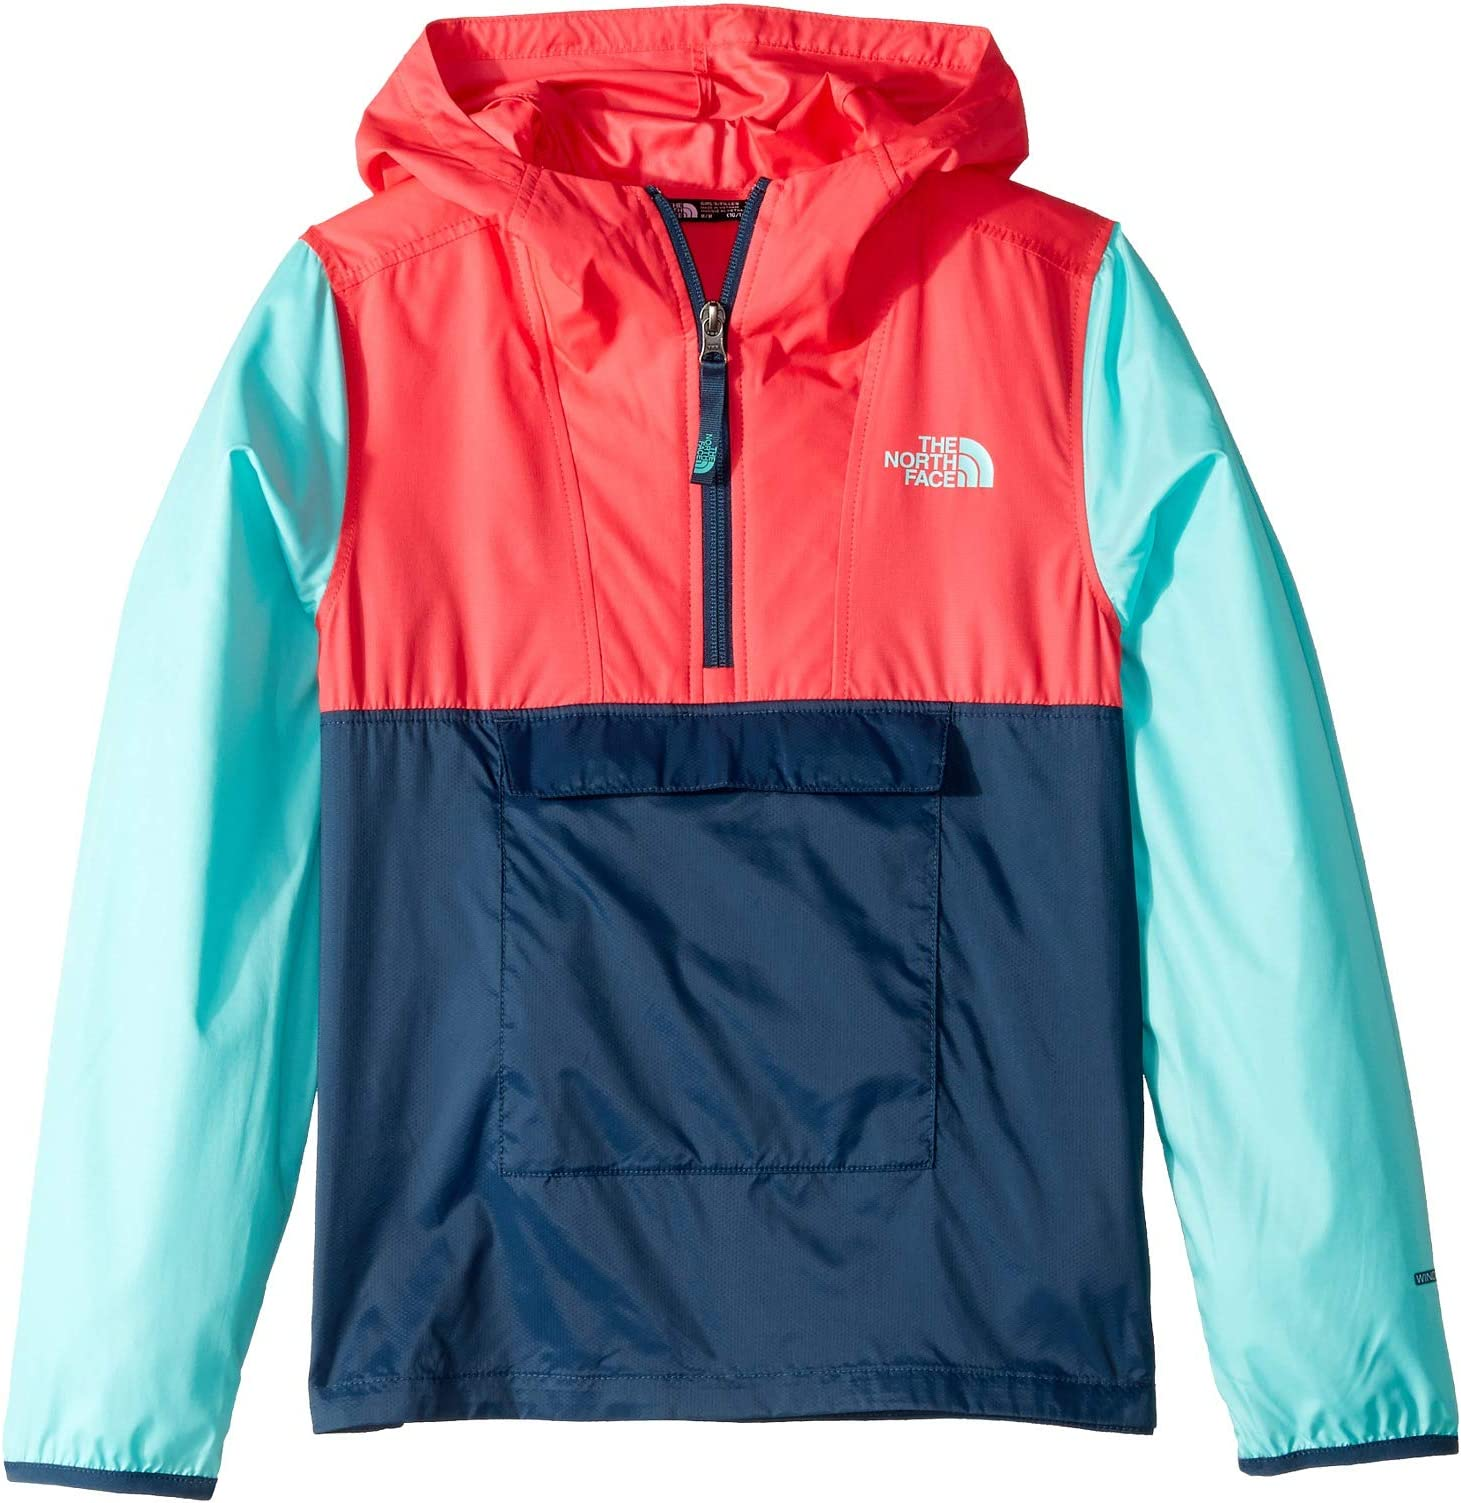 a0790fc5f The North Face Outerwear, Shoes, Bags, Clothing | Zappos.com